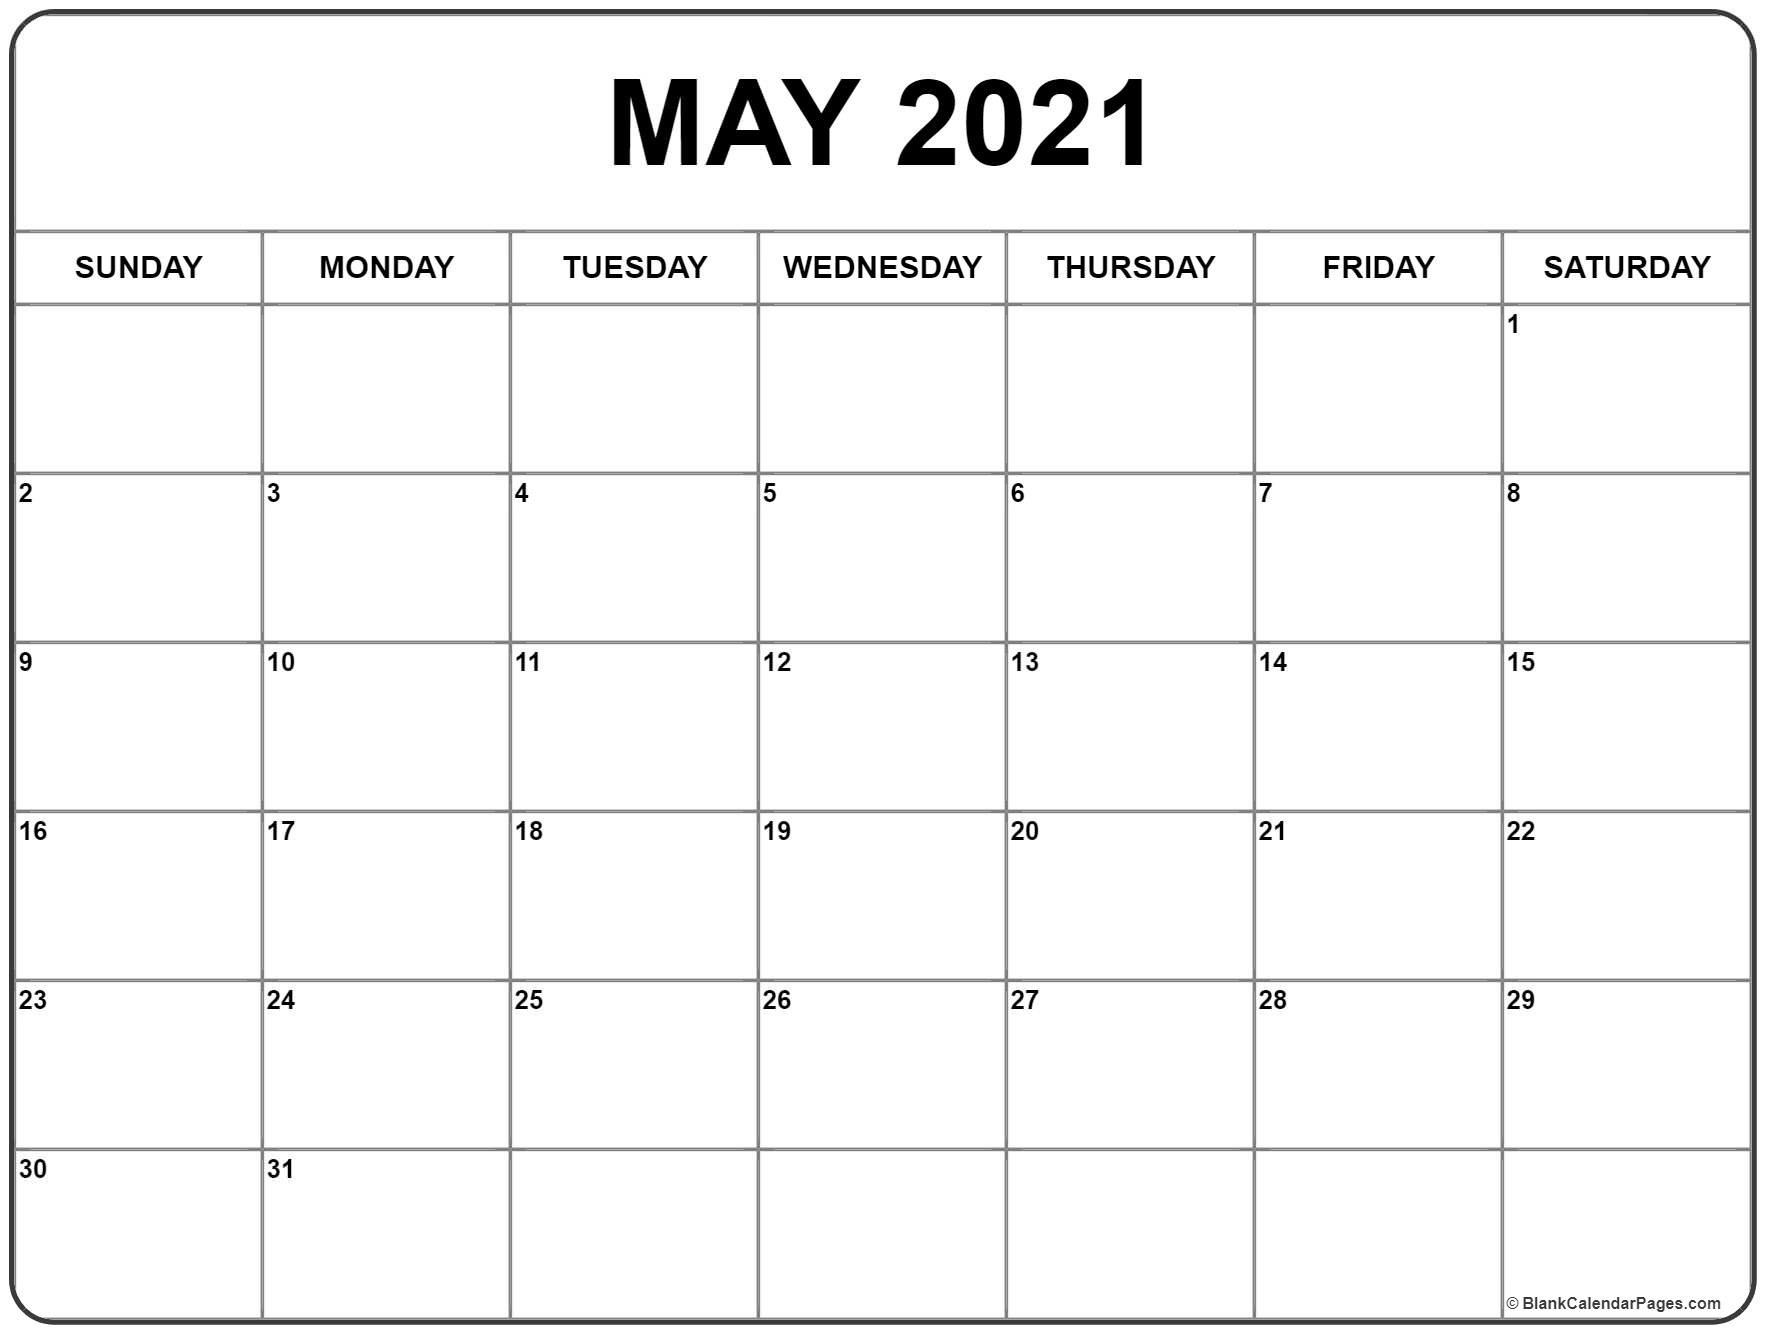 May 2021 Calendar | Free Printable Monthly Calendars-2021 2 Page Per Month May Calendar Picture